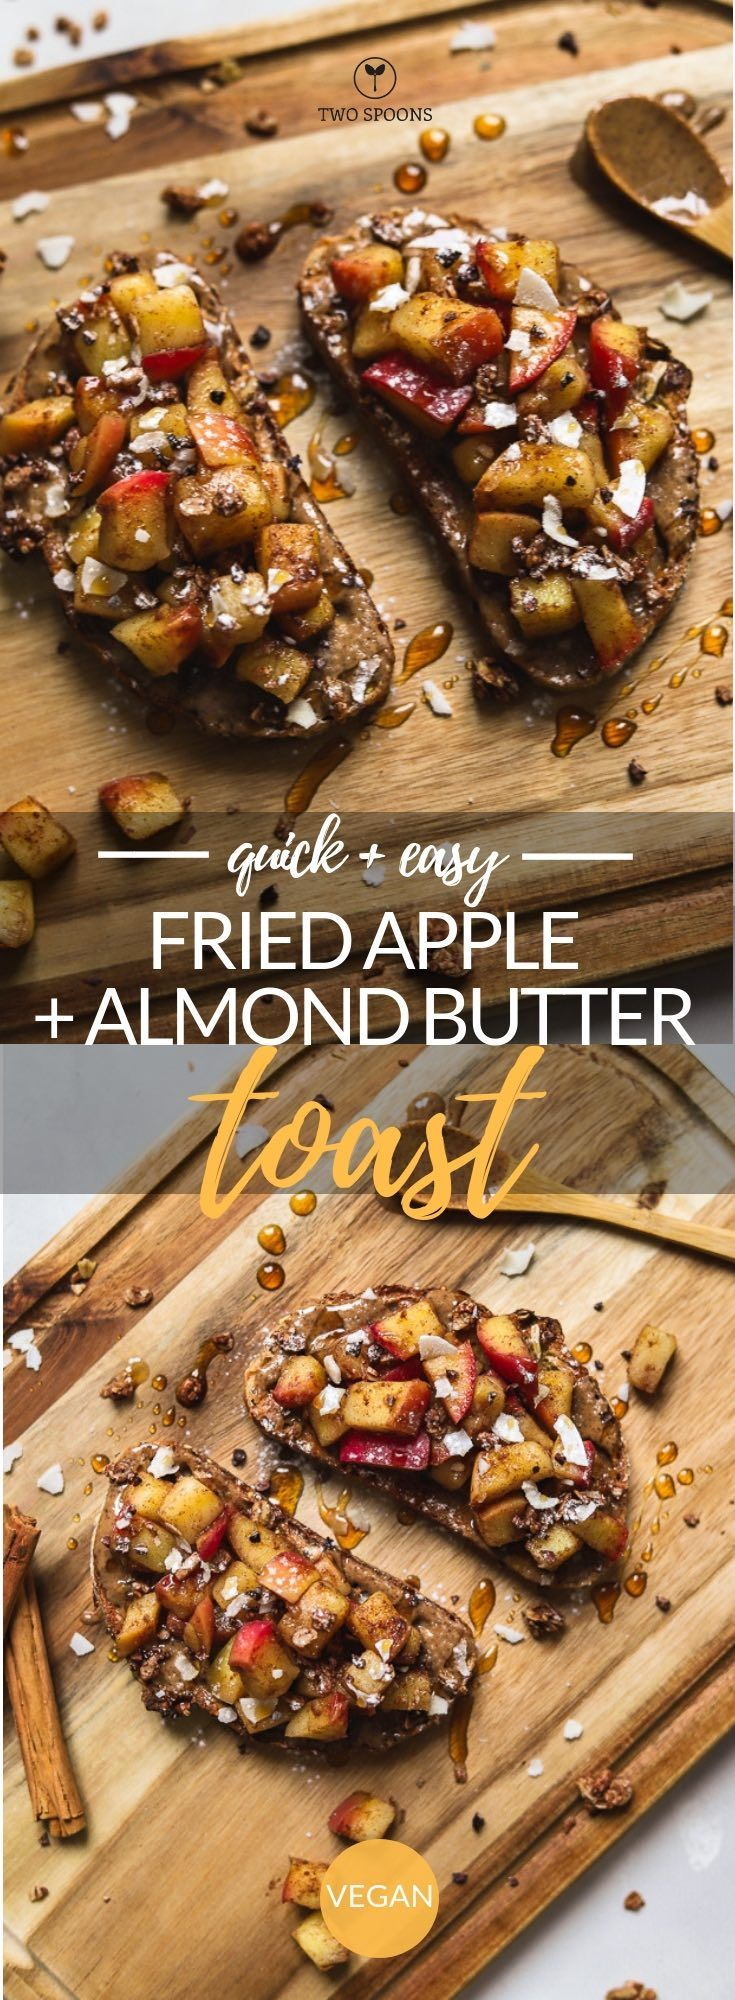 Fried Apple and Almond Butter Toast